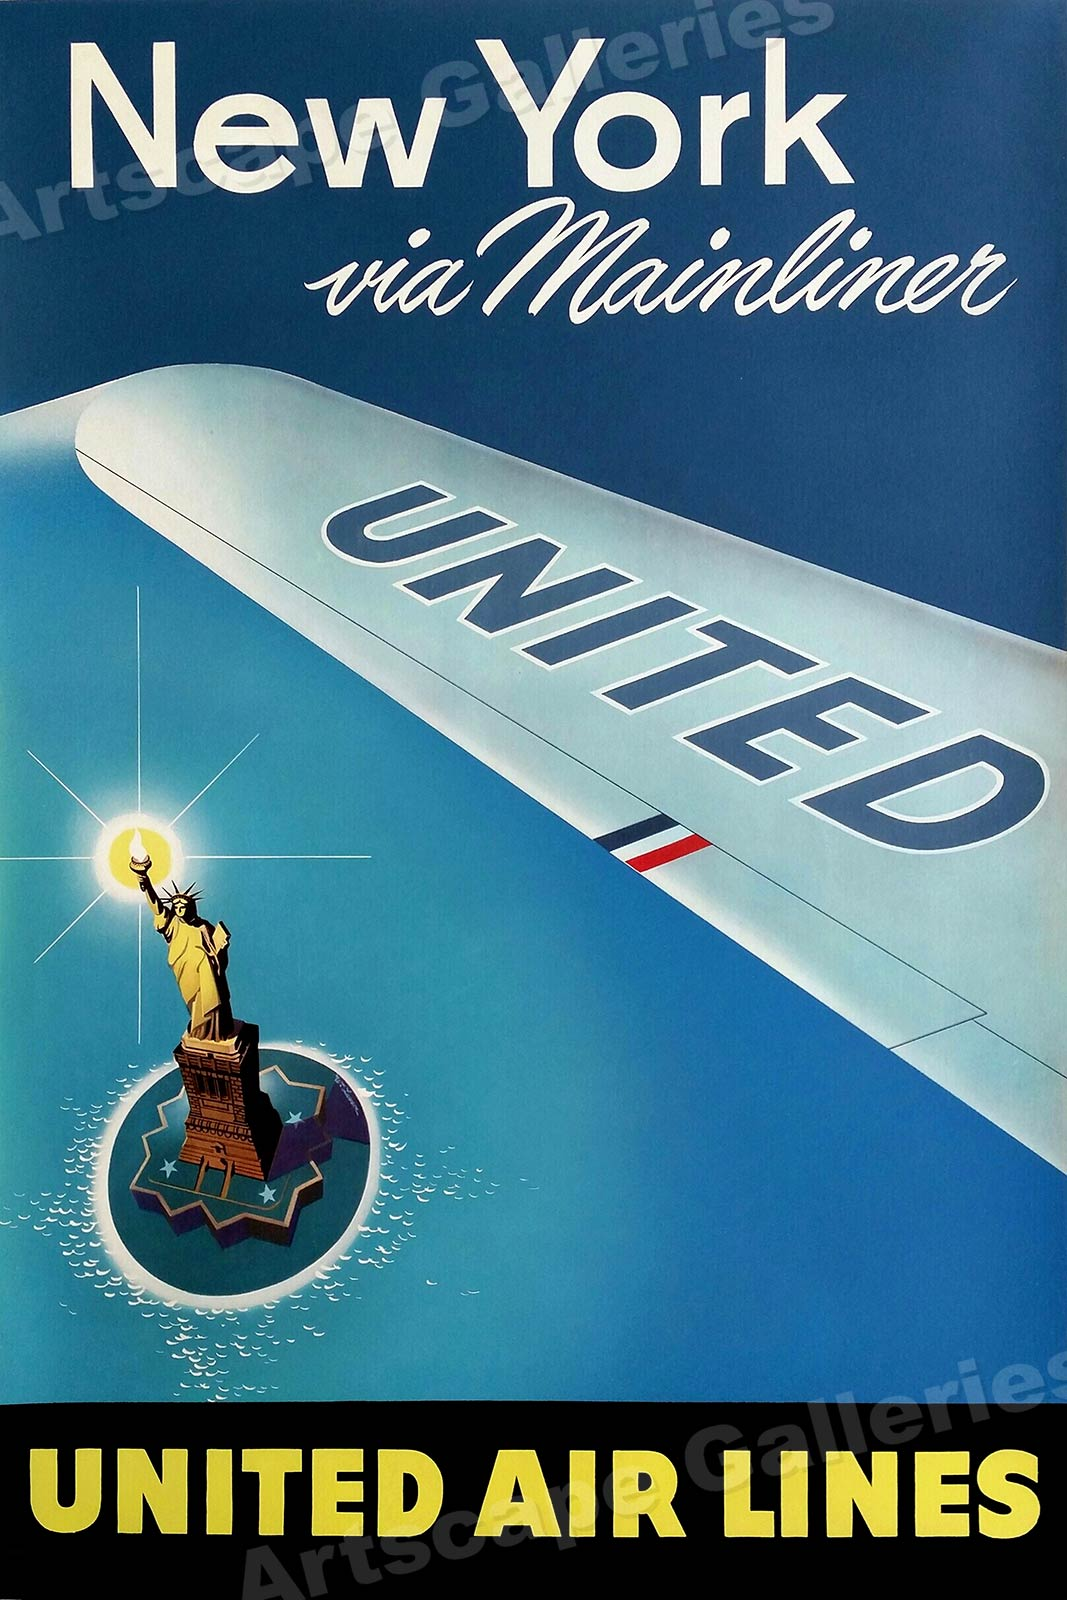 1935 Travel Air Land /& Sea Vintage Style Travel Poster 24x36